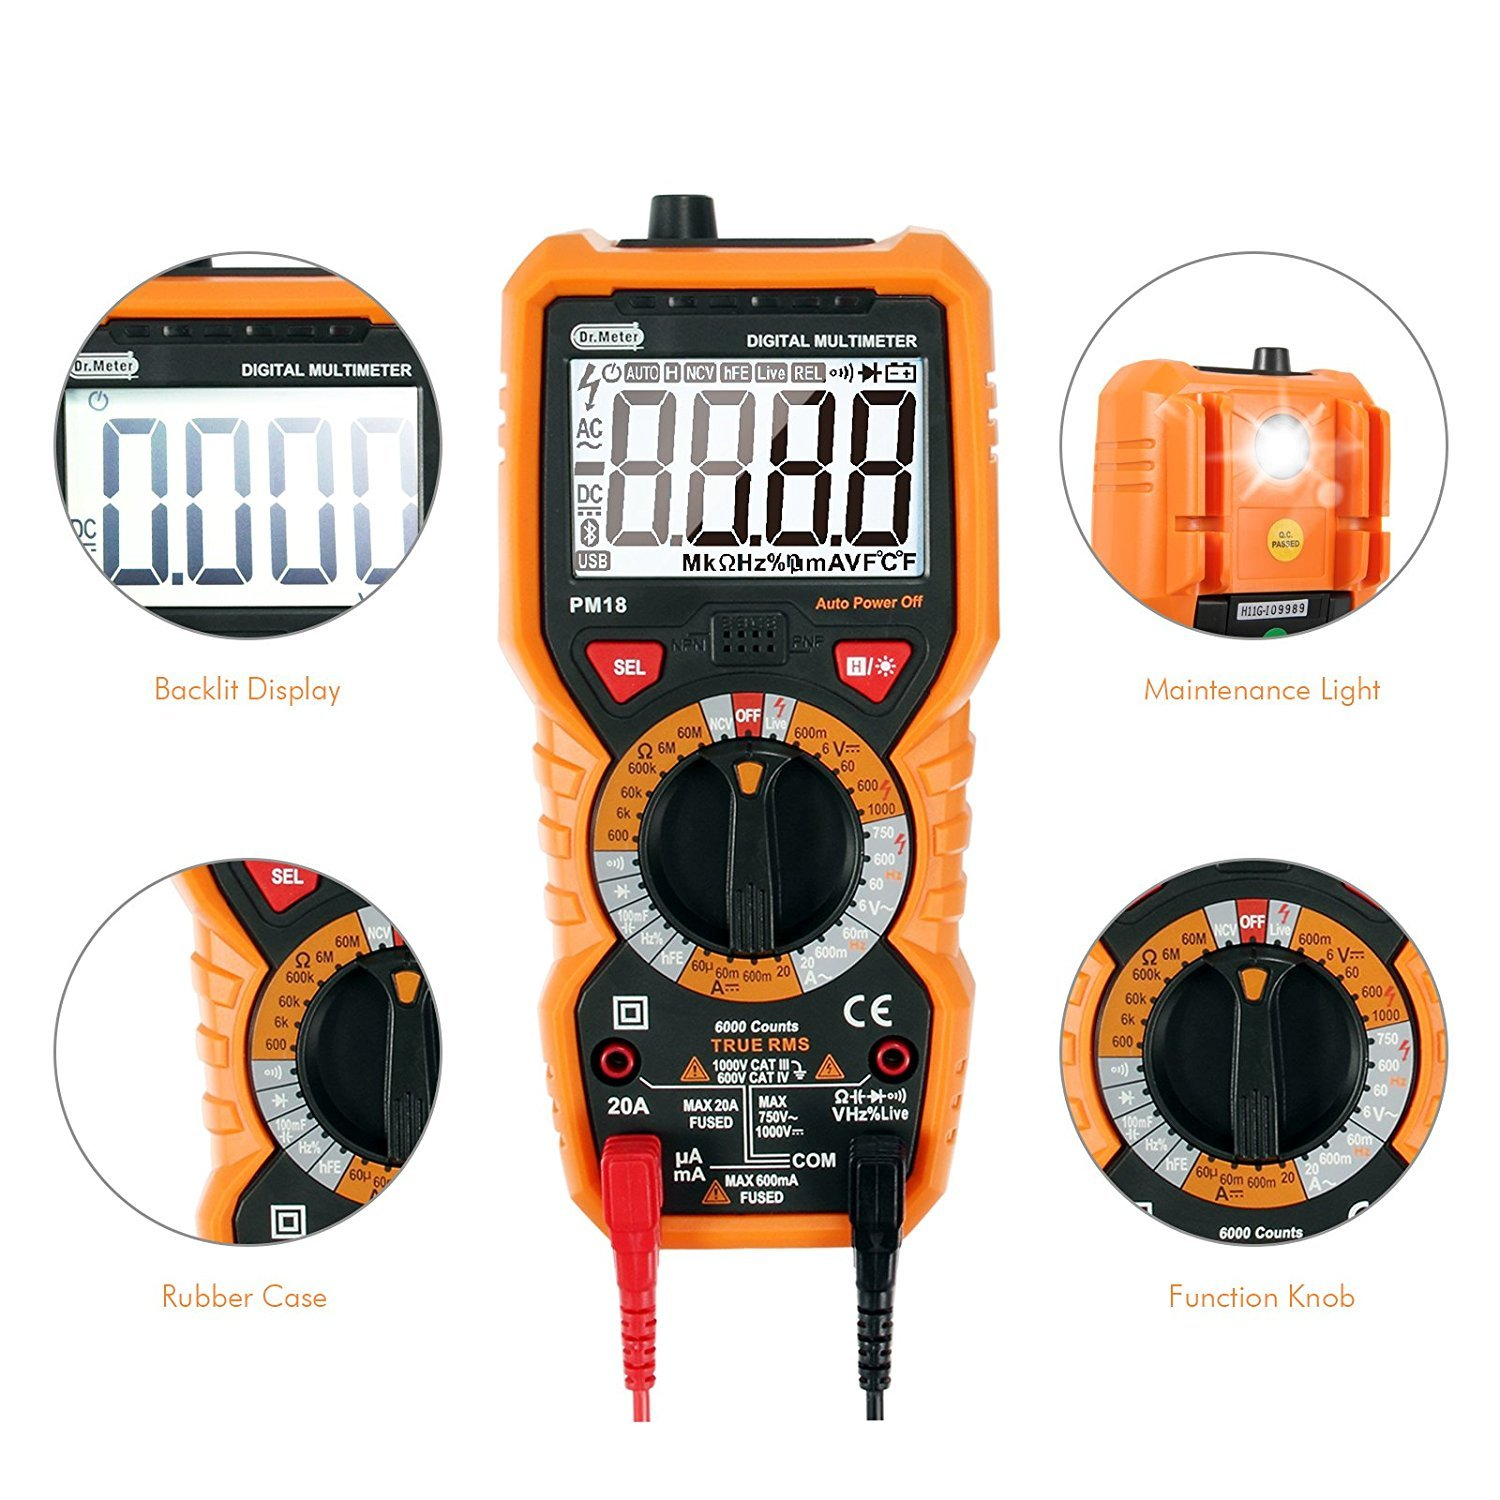 [Digital Multimeters] Dr.meter Digital Multimeter Trms 6000 Counts Tester Non-Contact Voltage Detection Multi Meter, PM18 by Dr.meter (Image #4)